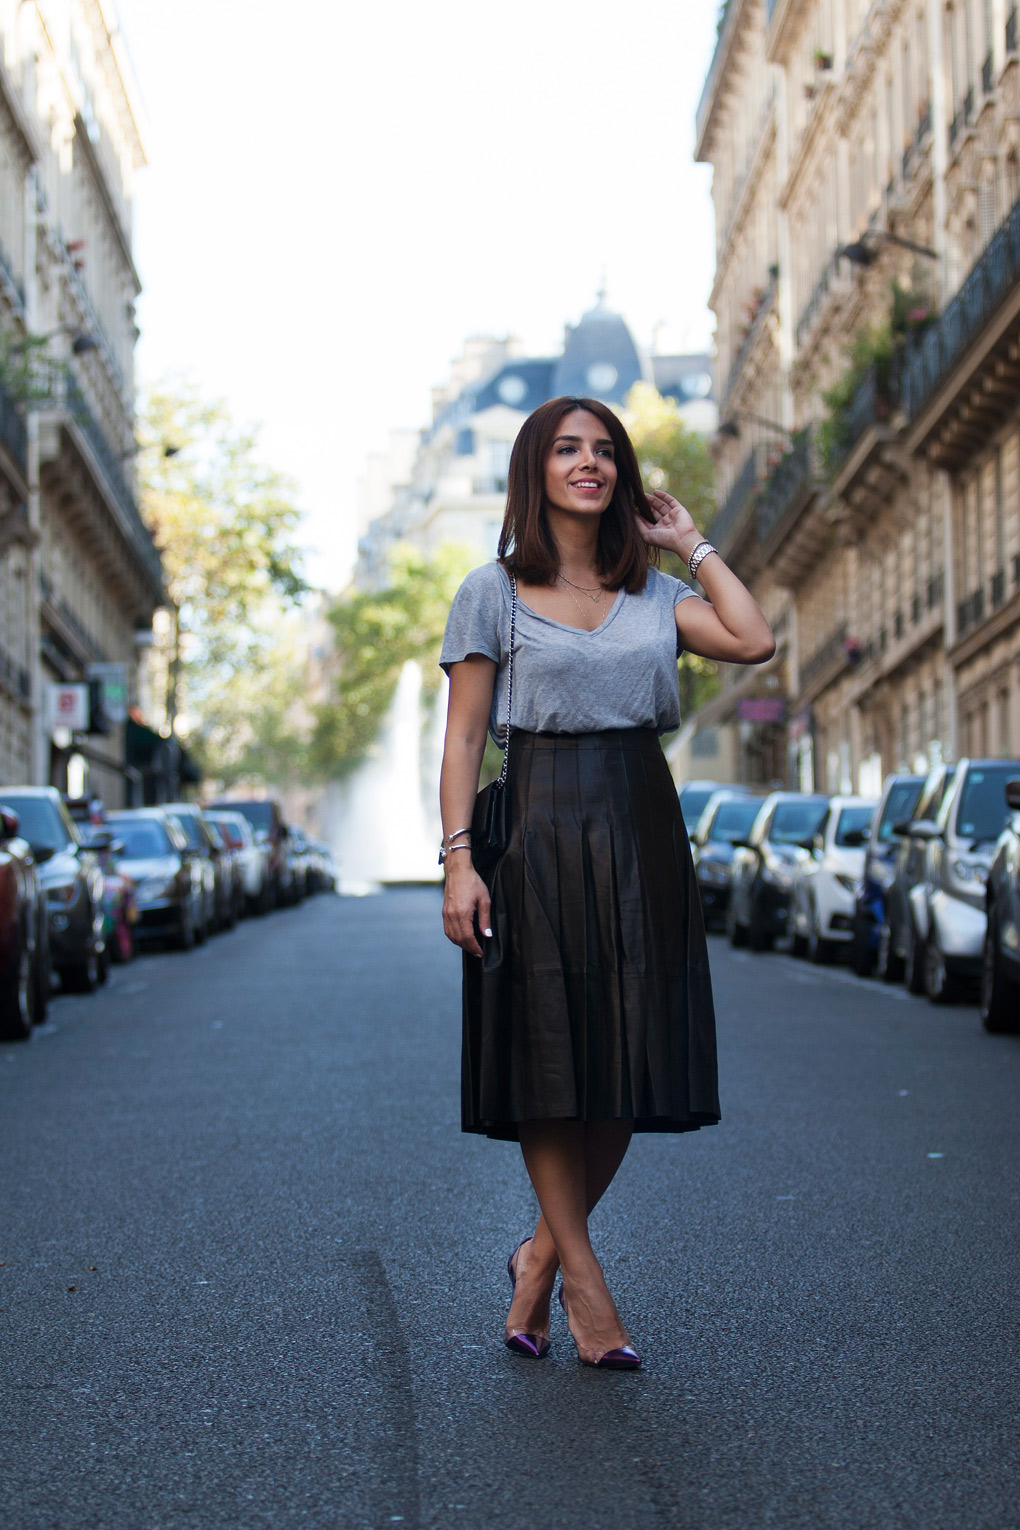 Lyla_Loves_Fashion_Leather_Skirt_Chanel_Paris_Fashion_Week_Street_Style_1532